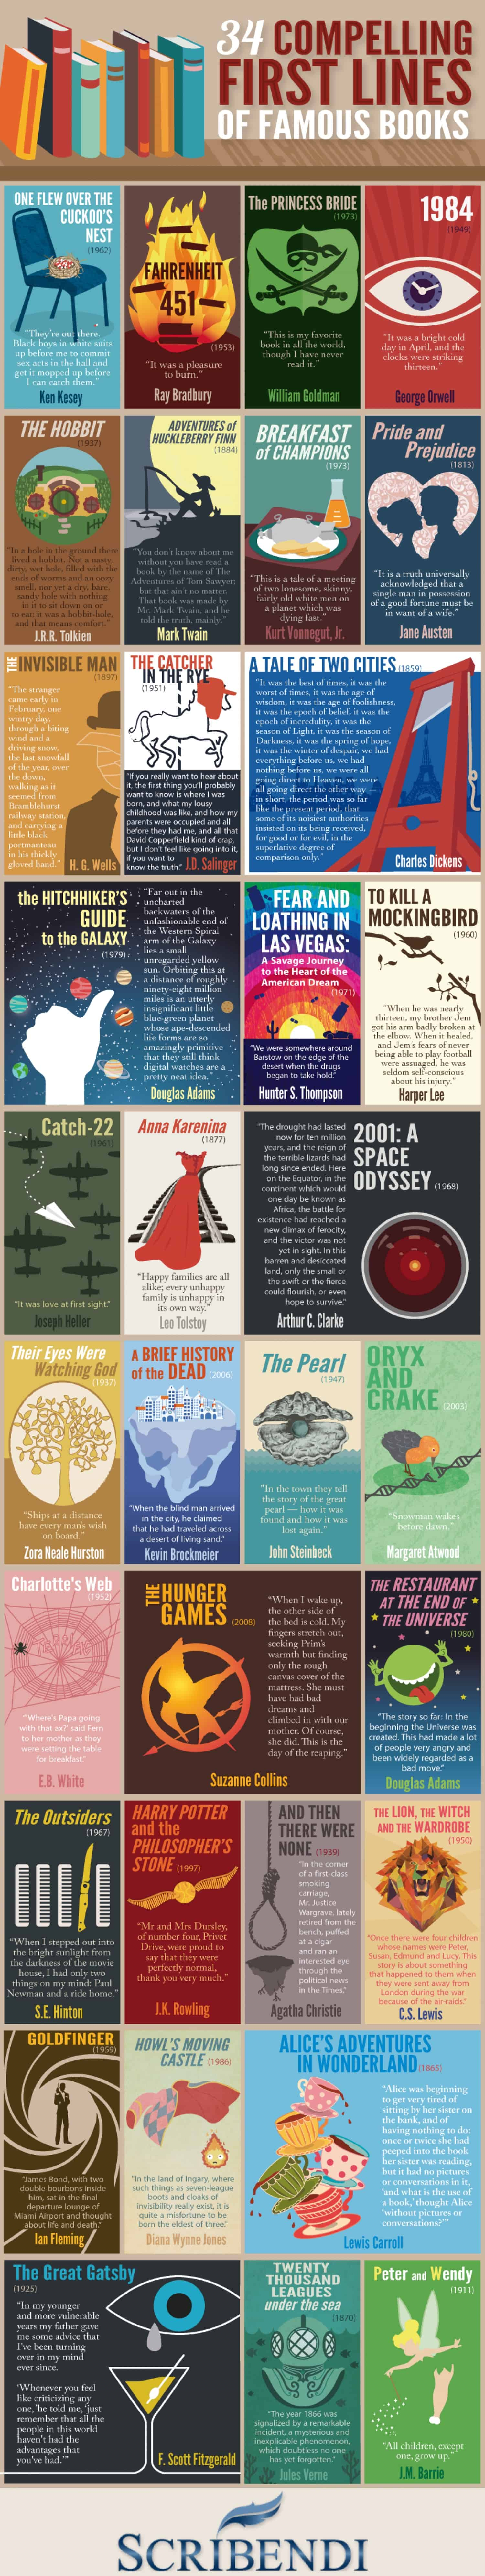 famous books lines most opening infographic compelling worlds